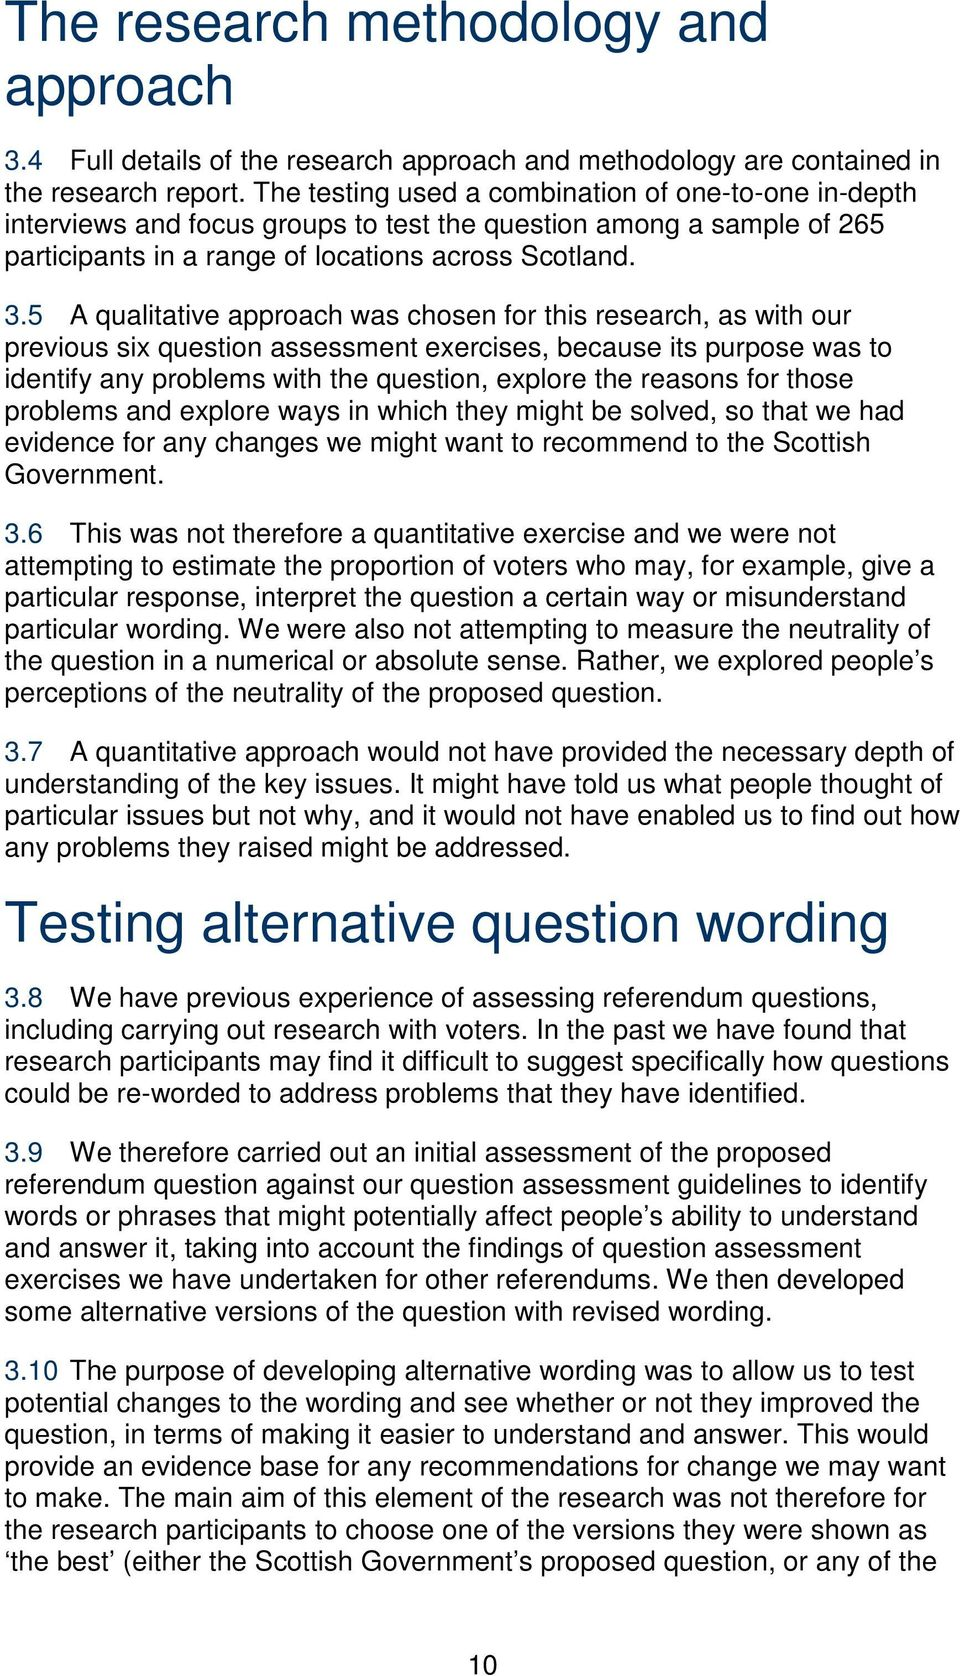 5 A qualitative approach was chosen for this research, as with our previous six question assessment exercises, because its purpose was to identify any problems with the question, explore the reasons